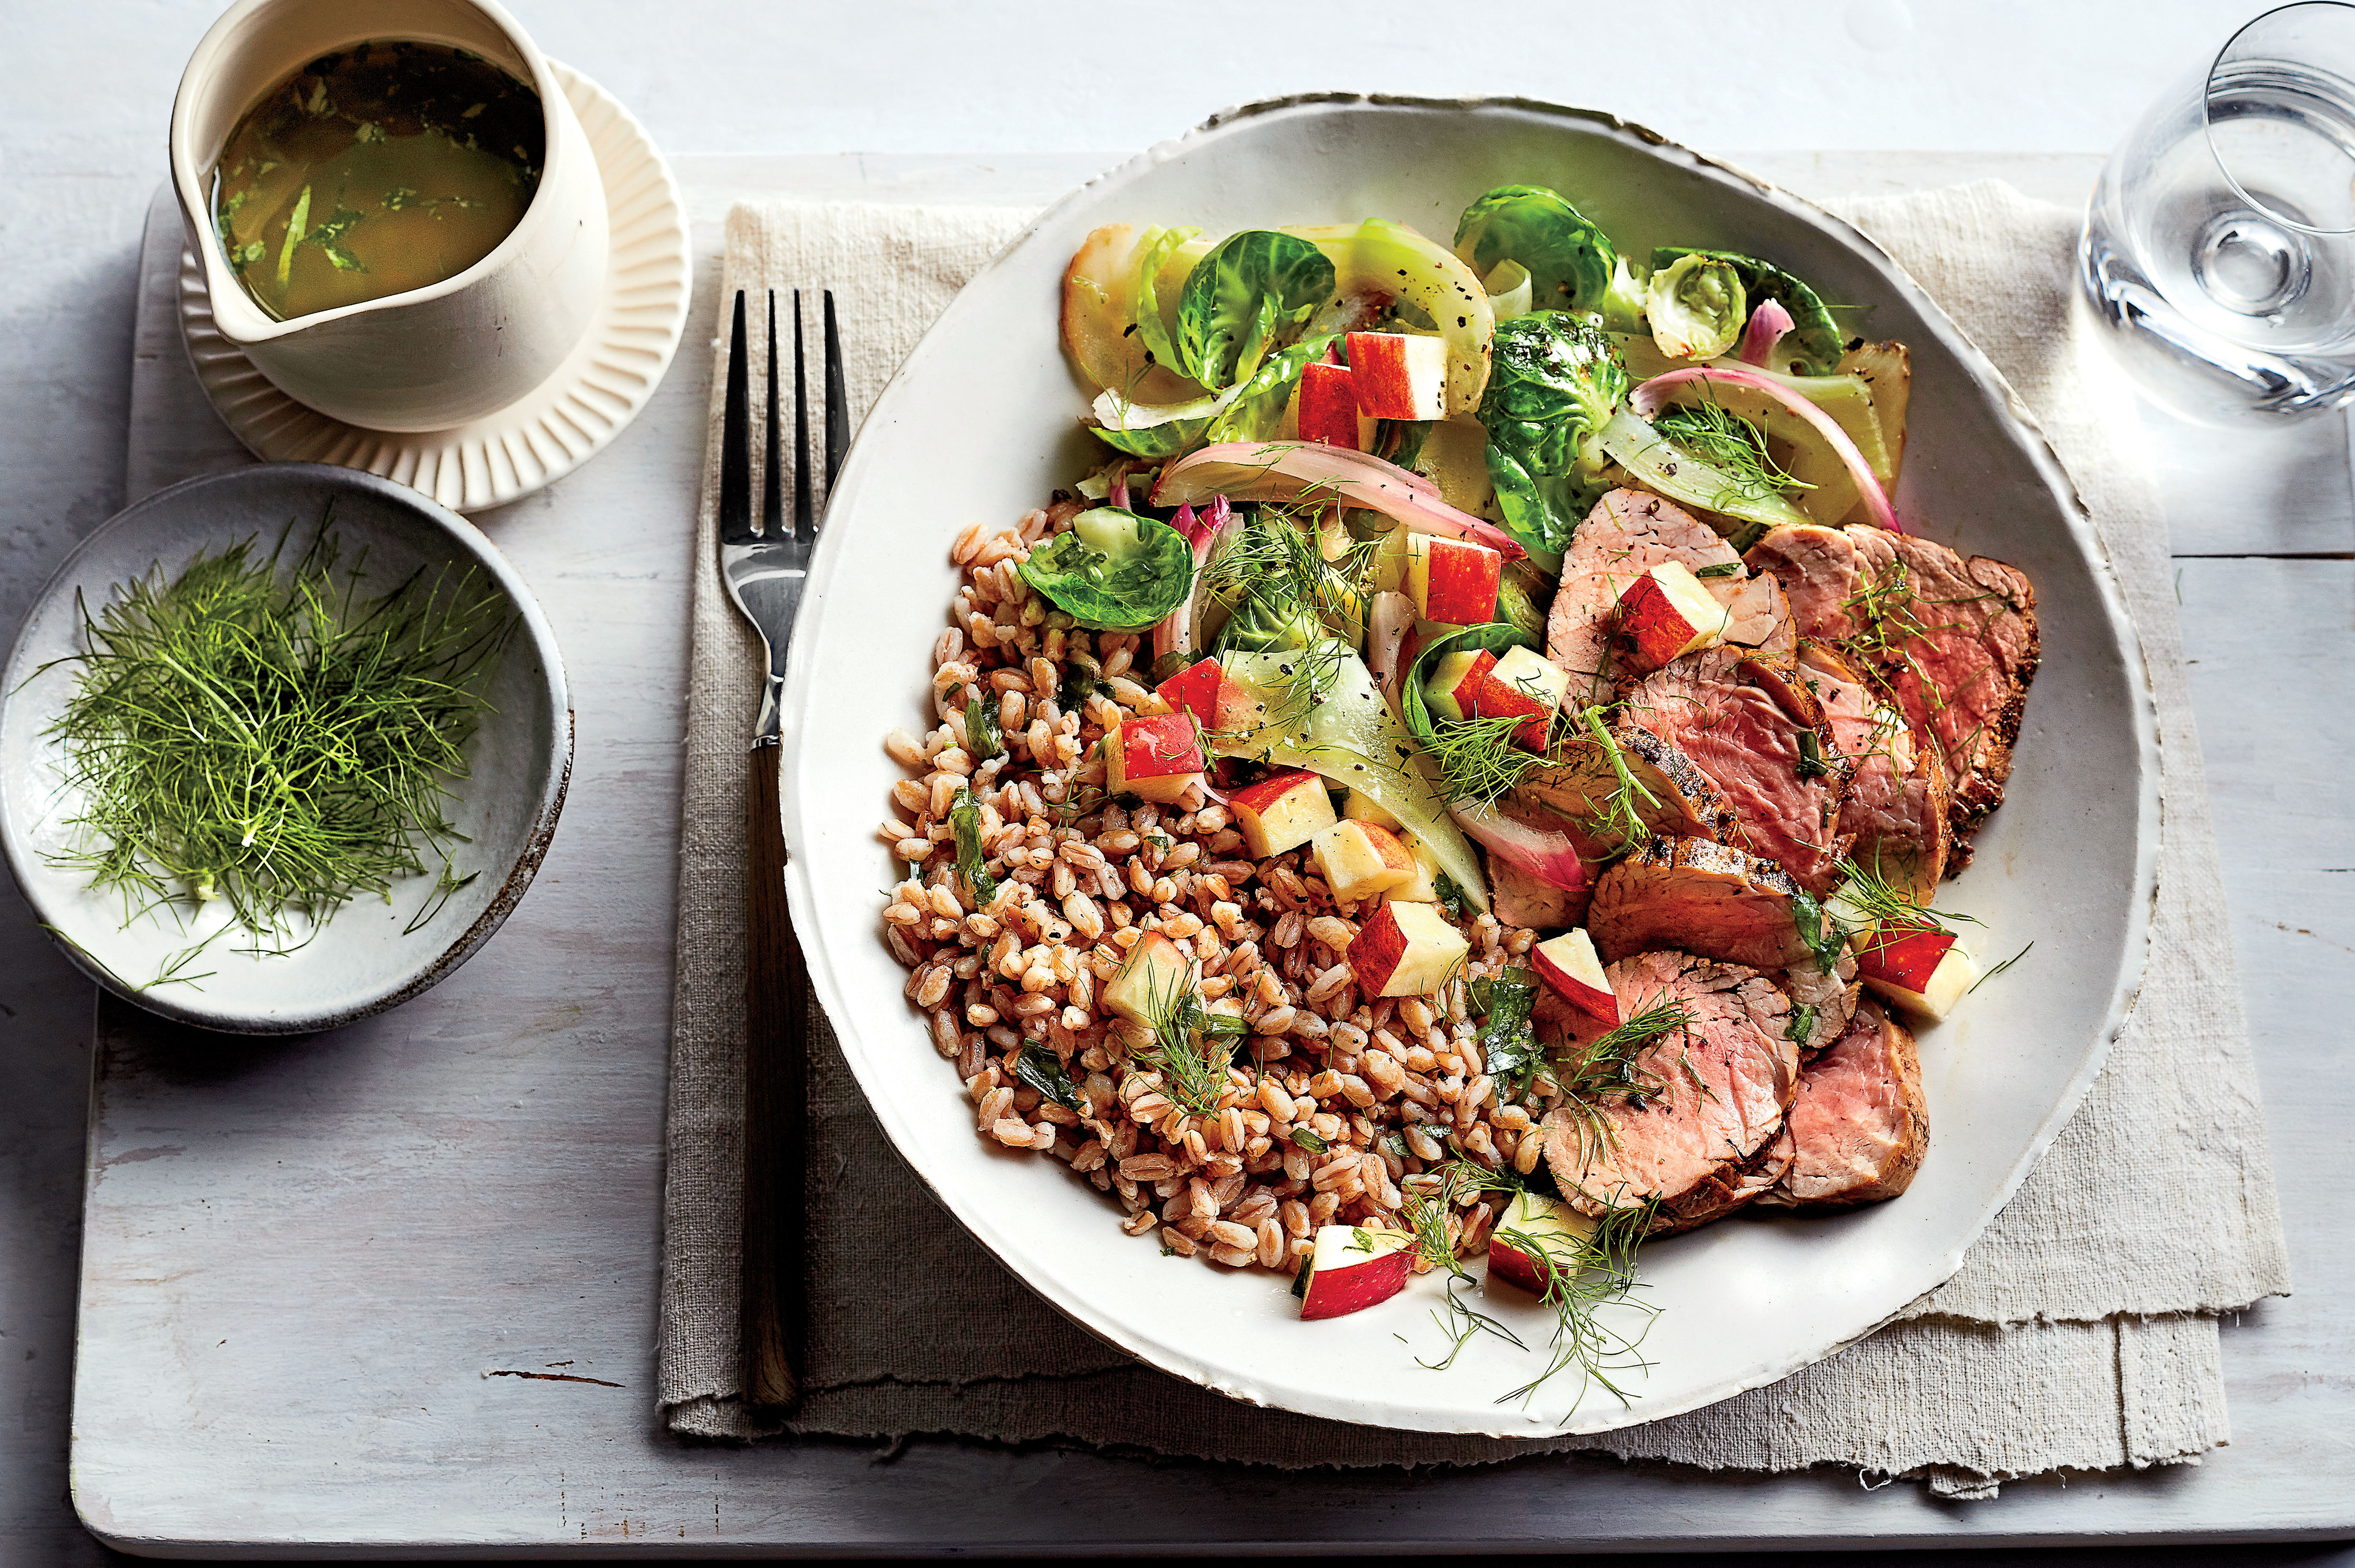 Pork-and-Farro Bowl with Warm Brussels Sprouts-Fennel Salad Recipe